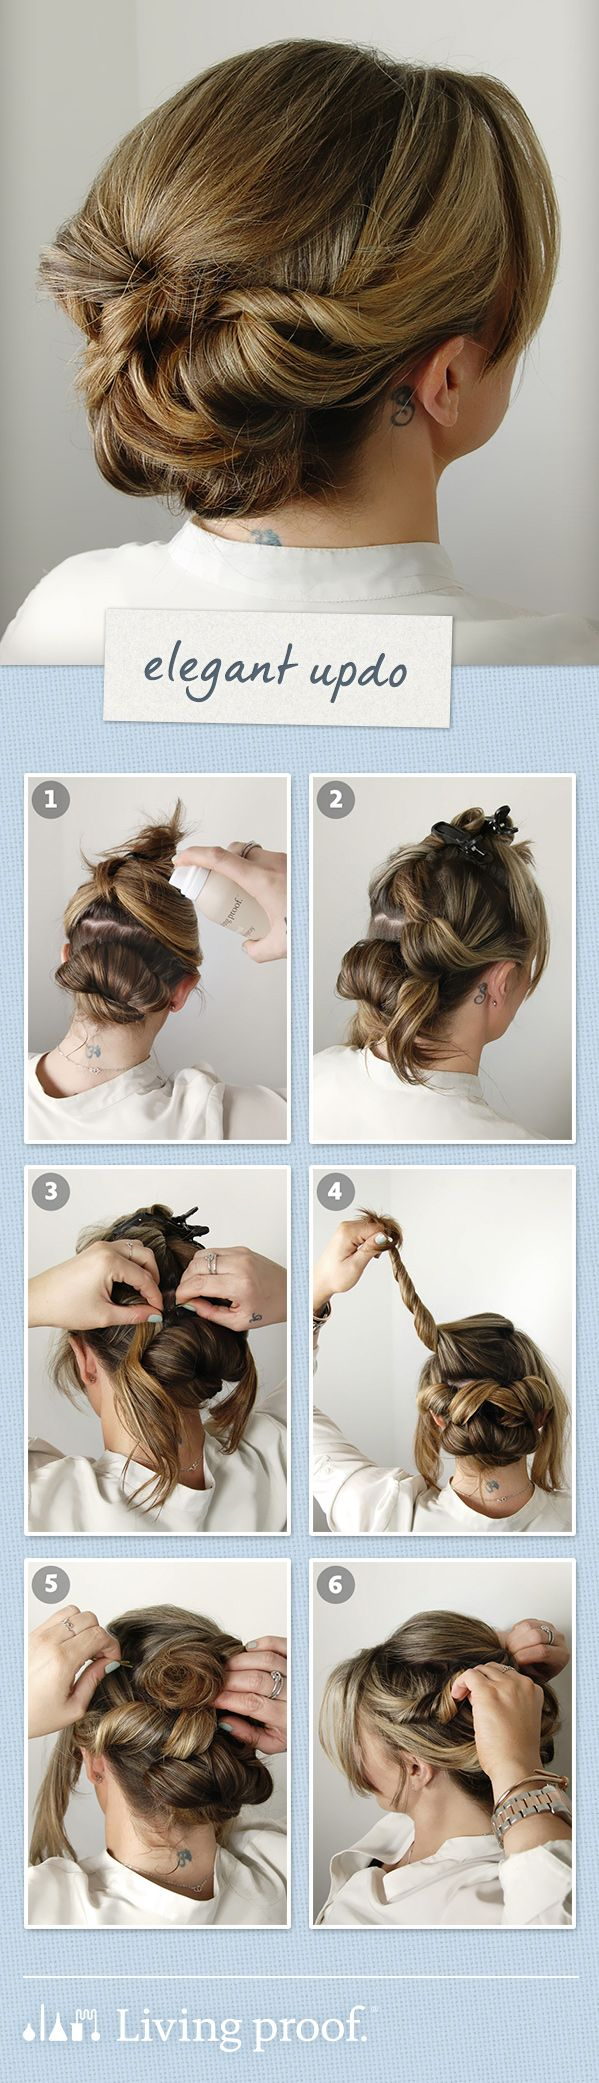 103 best New Hairstyles images on Pinterest | Cute hairstyles, Easy ...